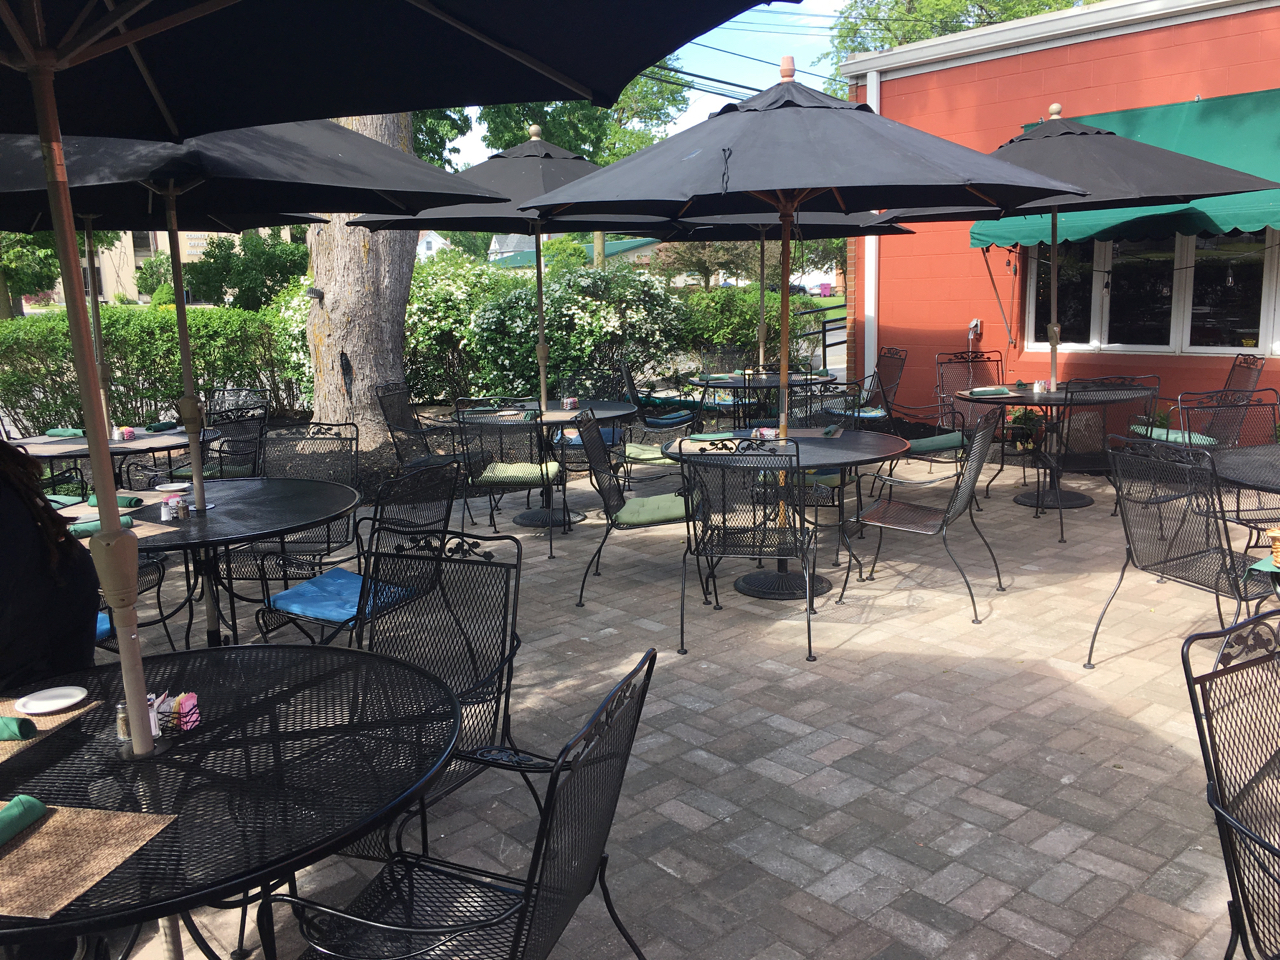 Enjoy Our Beautiful Outdoor Patio For Any Type Of Party, Or Dining On Warm,  Sunny Days.